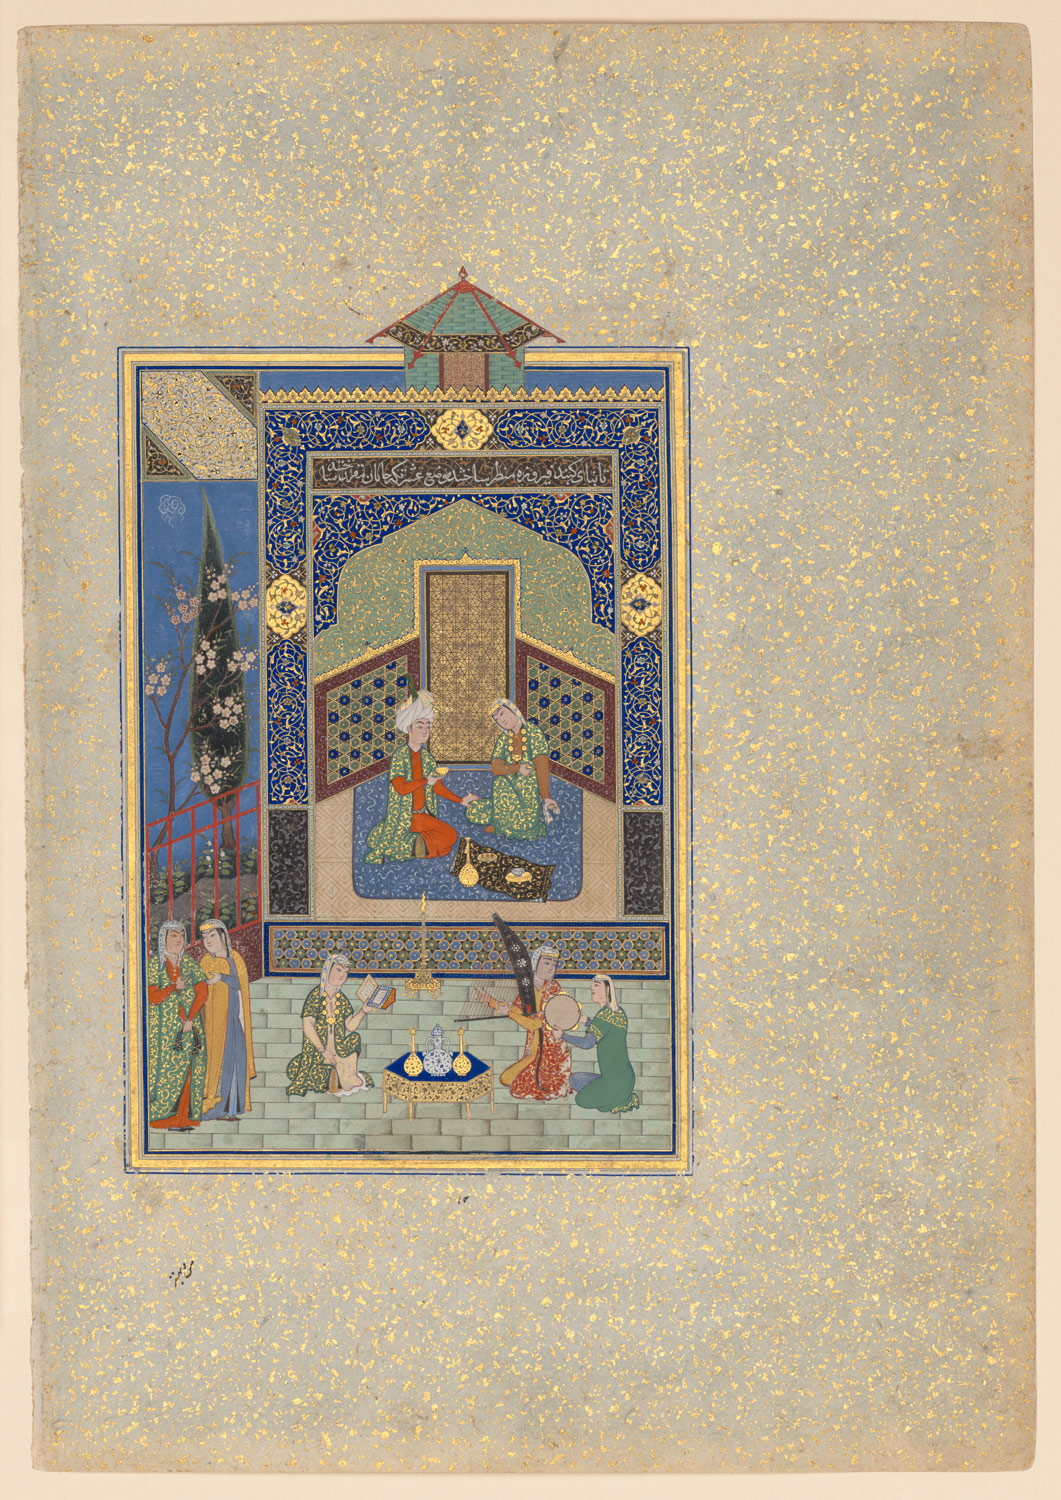 Bahram Gur in the Green Palace on Monday, Folio from a Khamsa (Quintet) of Nizami